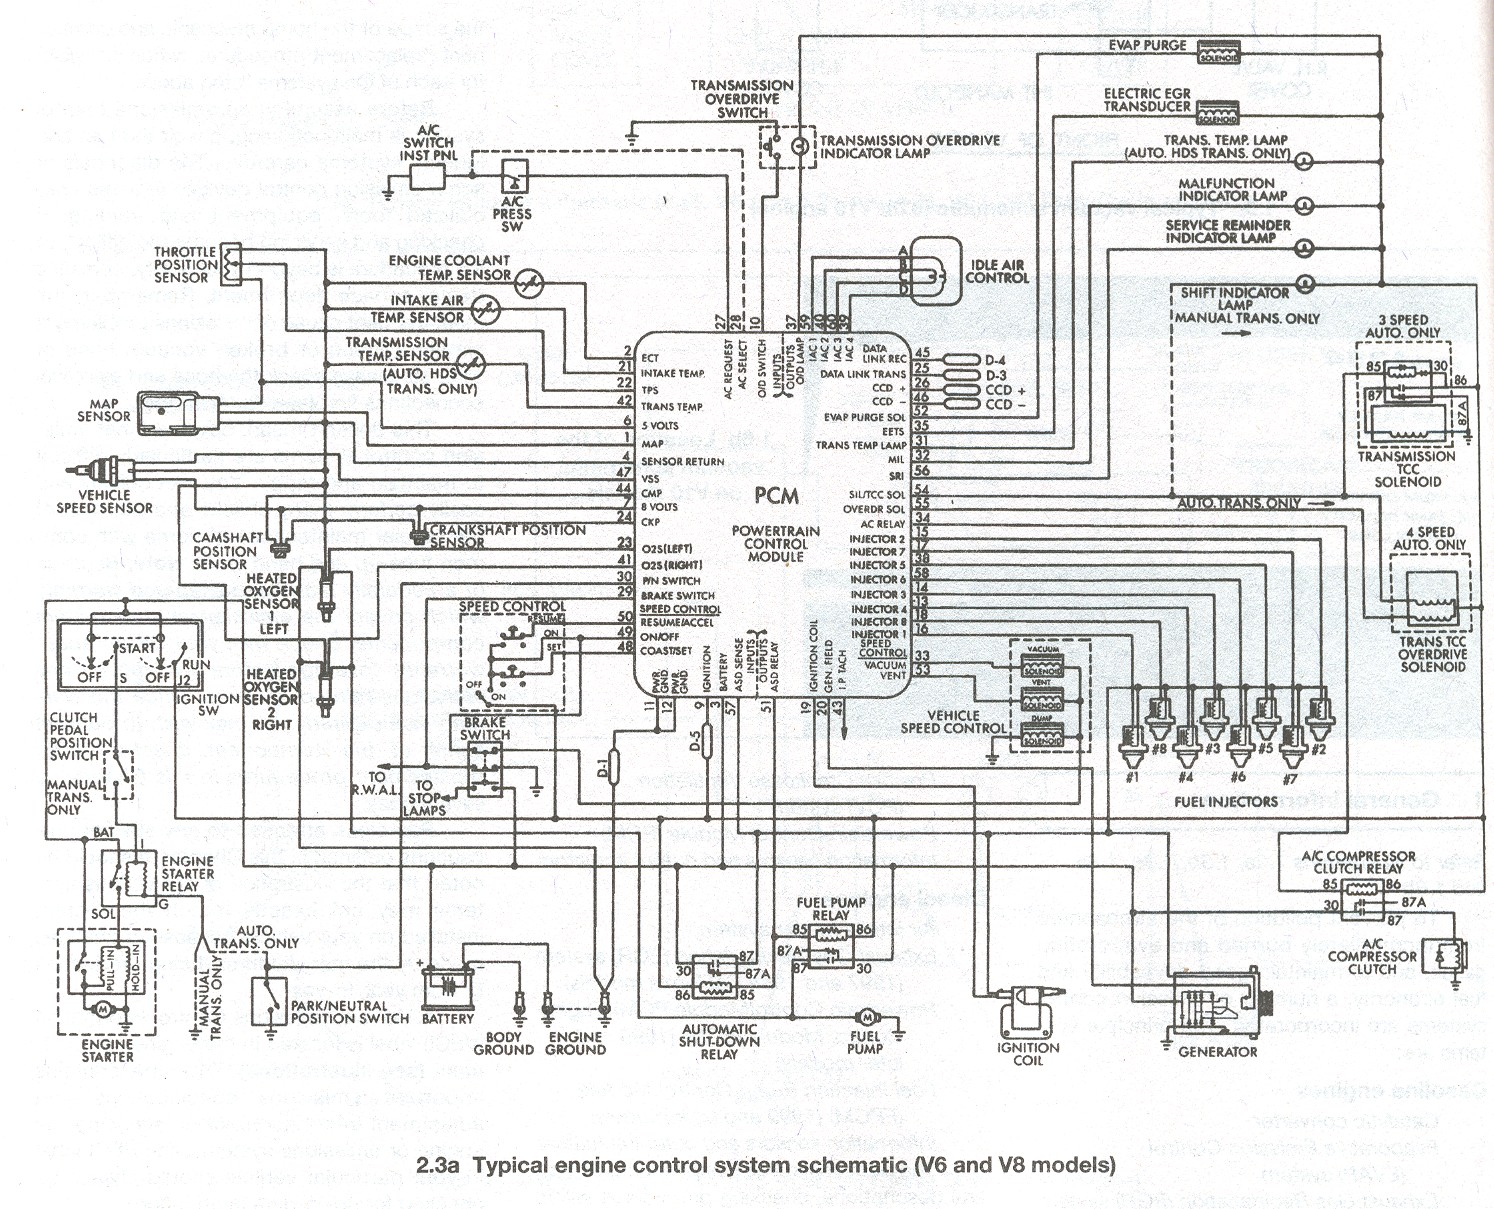 300zx Fuse Box Diagram Likewise 1962 C10 Chevy Truck Wiring Diagram